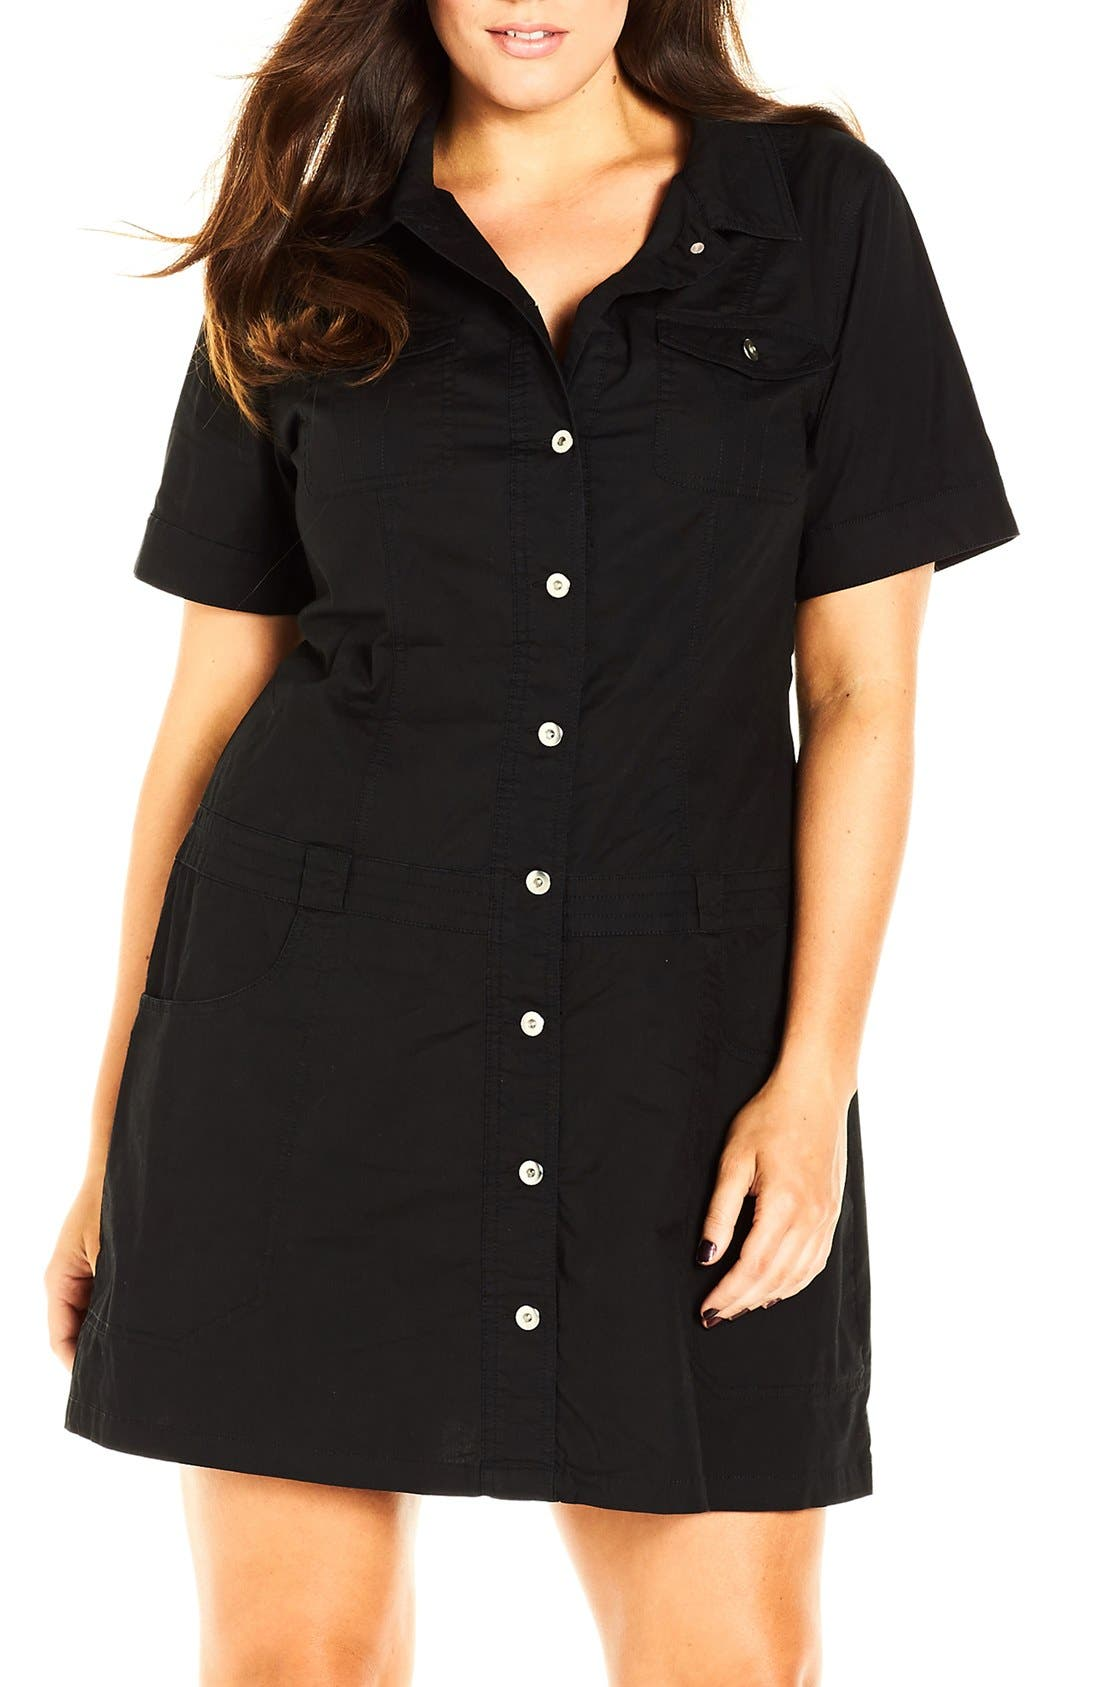 Main Image - City Chic 'Adventure' Short Sleeve Stretch Cotton Shirtdress (Plus Size)